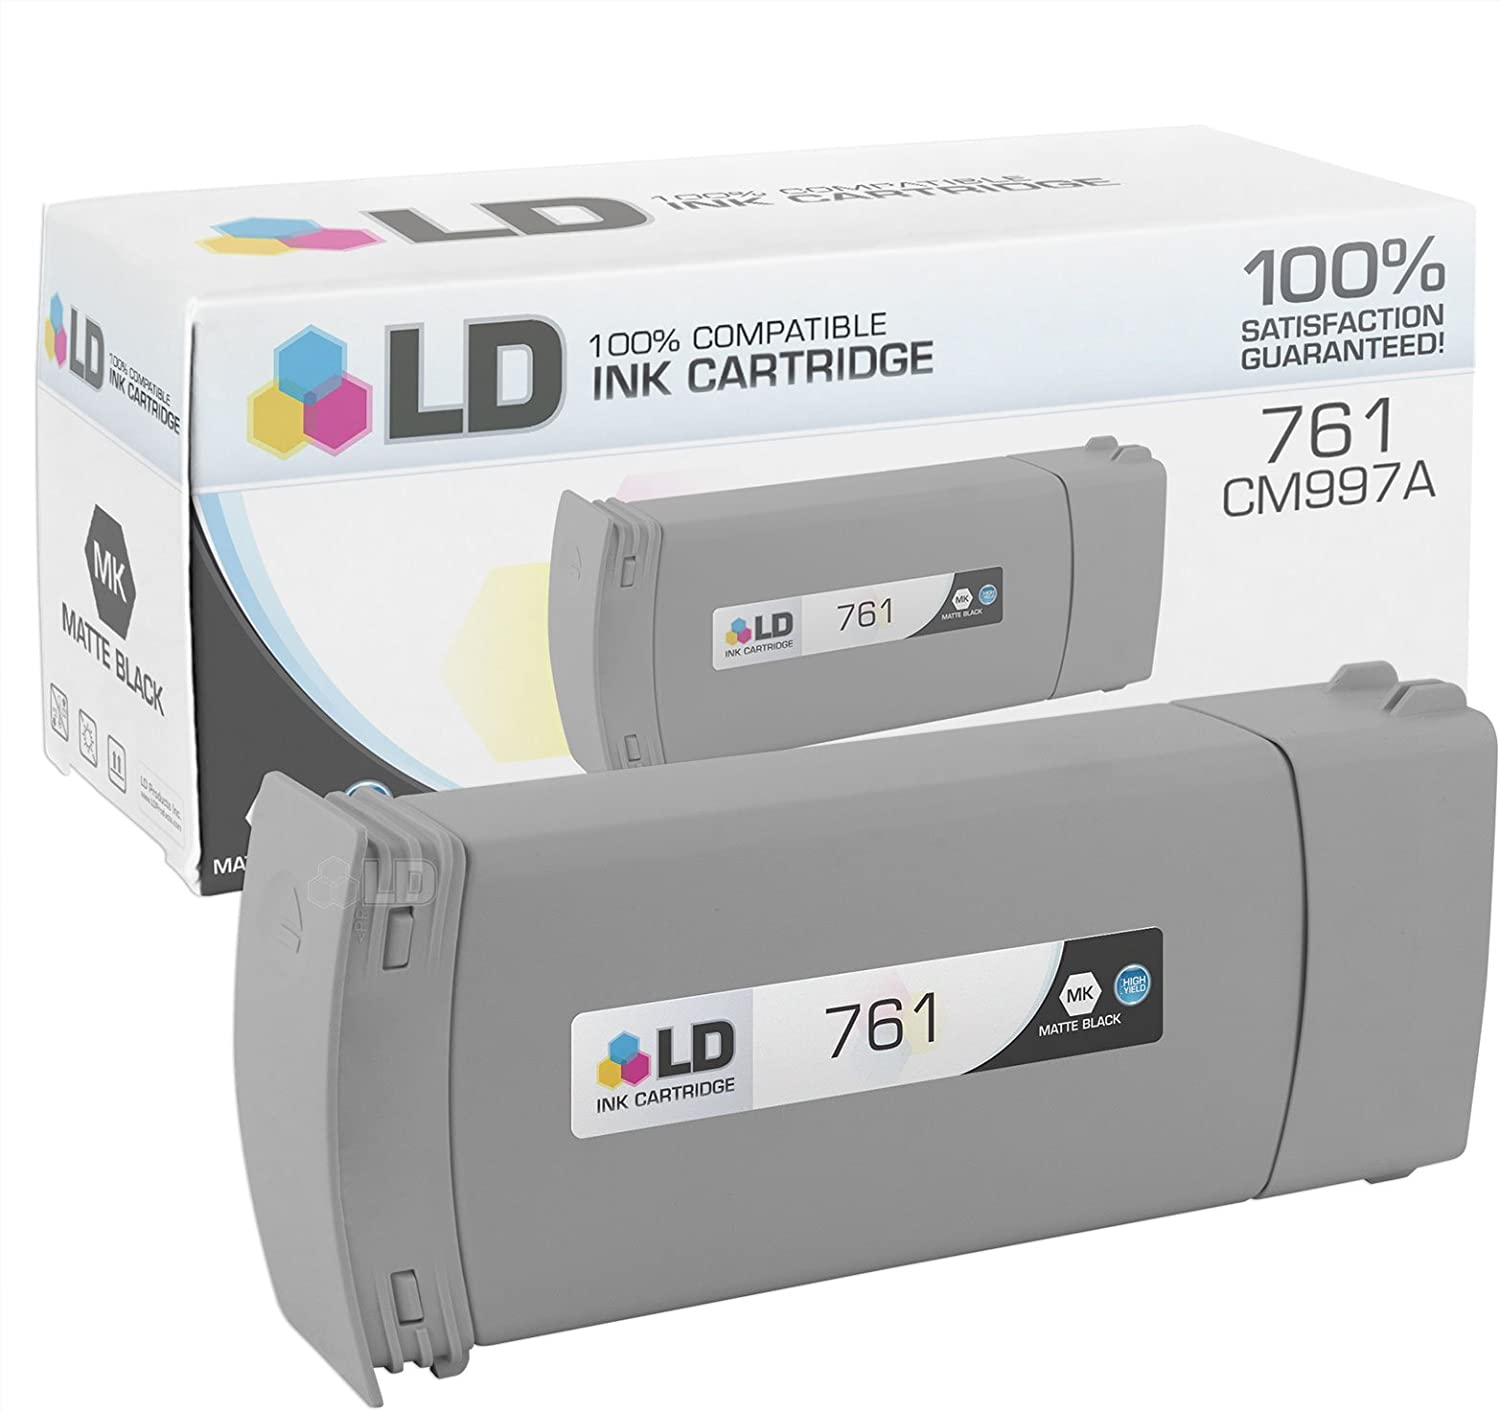 LD Remanufactured Ink Cartridge Replacement for HP 761 CM997A Extra High Yield (Matte Black)